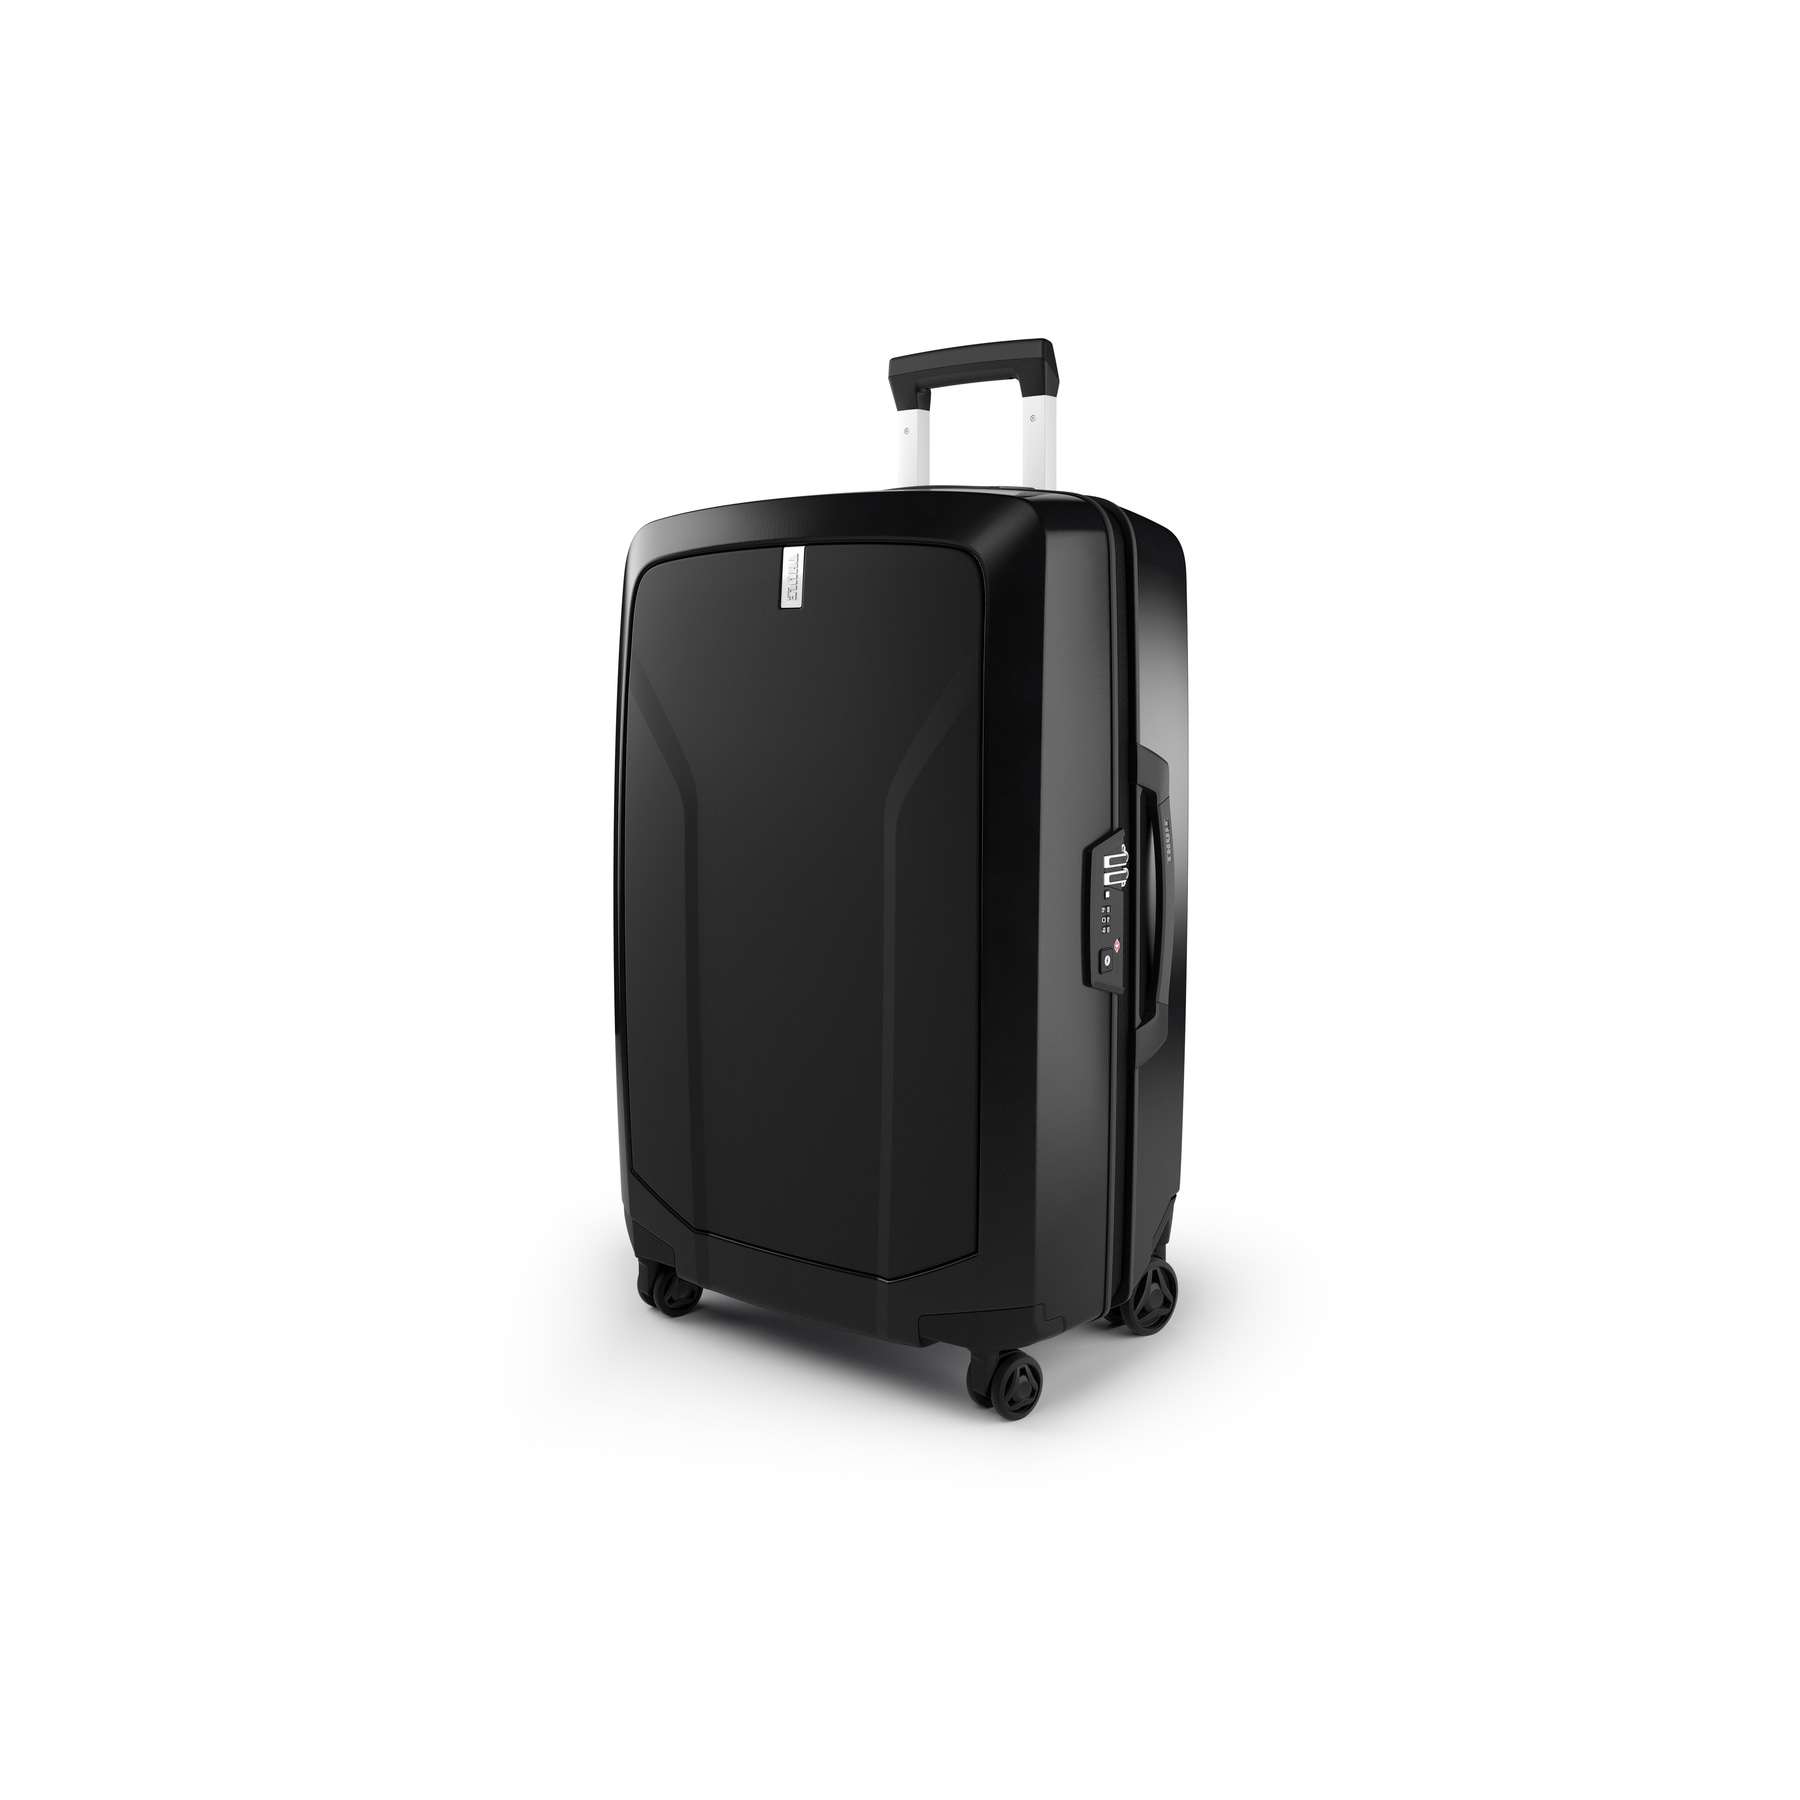 Revolve Luggage 68cm/27in Black